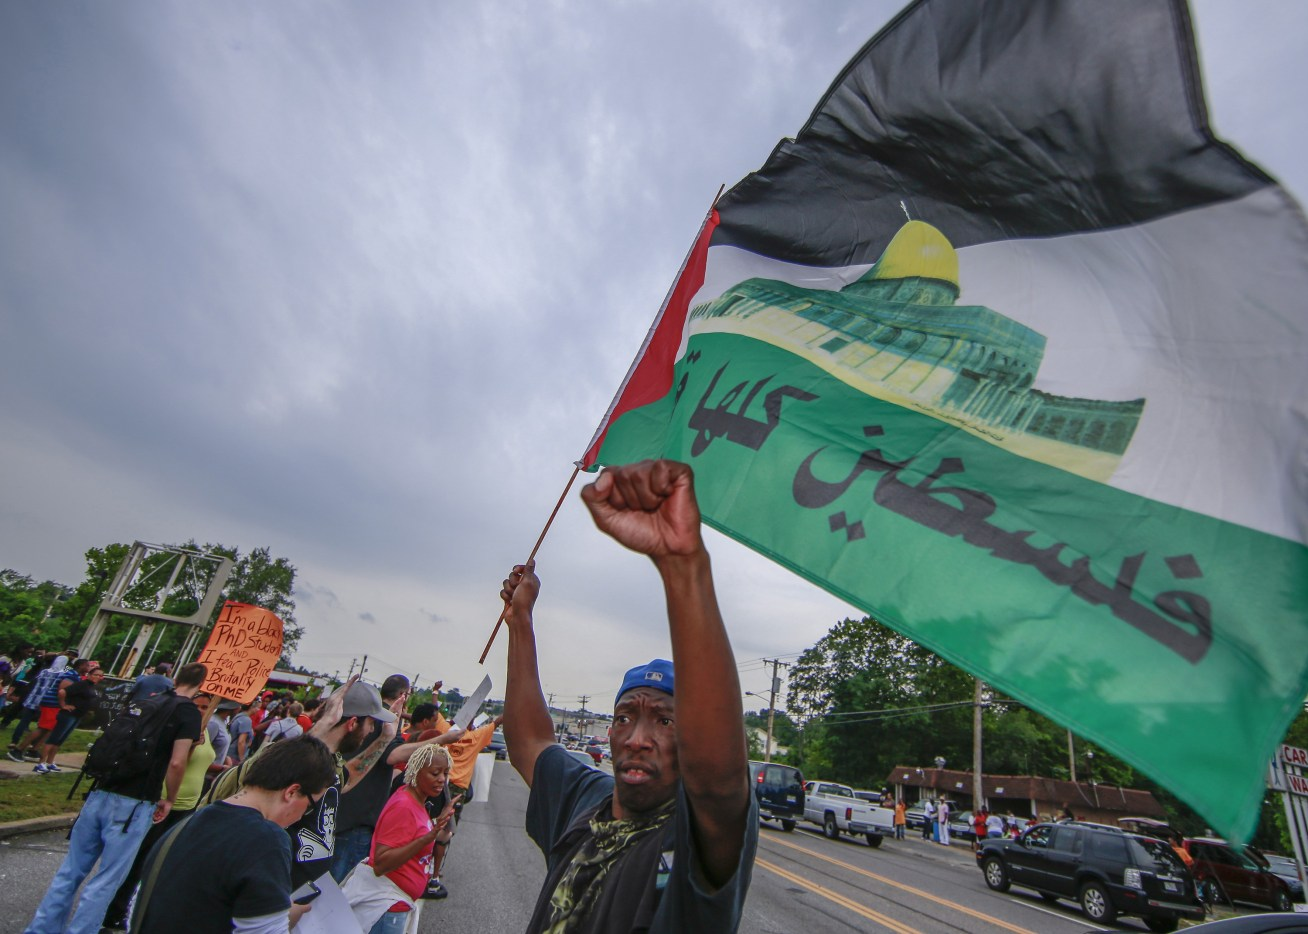 FERGUSON, UNITED STATES - AUGUST 16:  A protester waves Palestinian flag in solidarity with Gaza as Americans shout slogans and hold banners during a demonstration against the death of eighteen-year-old unarmed teen Michael Brown in Ferguson, Missouri on August 16, 2014. Brown, allegedly stole some cigars, shot dead by police in the St. Louis suburb of Ferguson, Missouri on August 09, 2014. (Photo by Bilgin Sasmaz/Anadolu Agency/Getty Images)